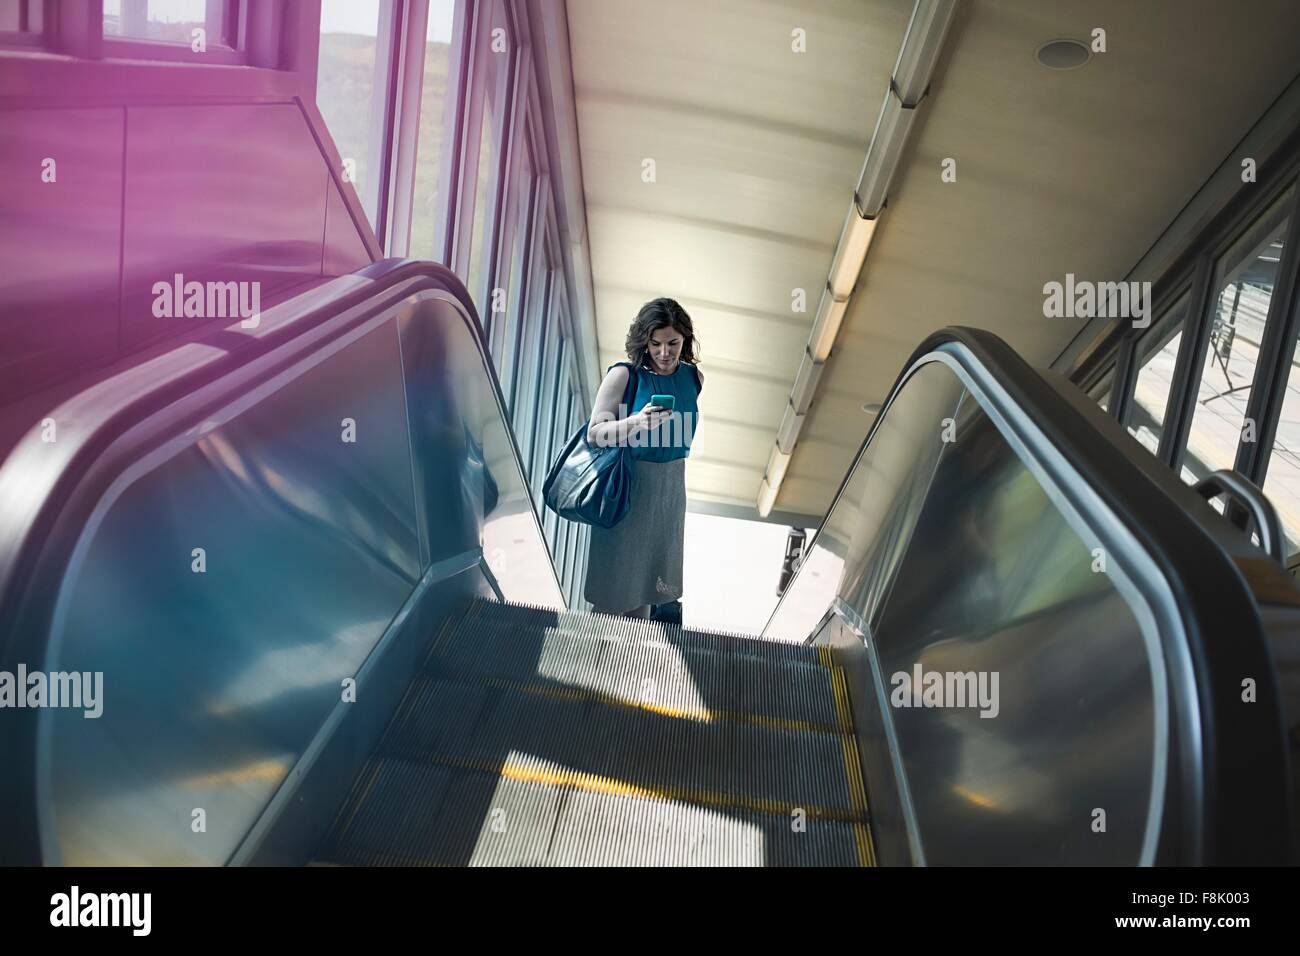 Mid adult woman using escalator, holding smartphone, elevated view - Stock Image